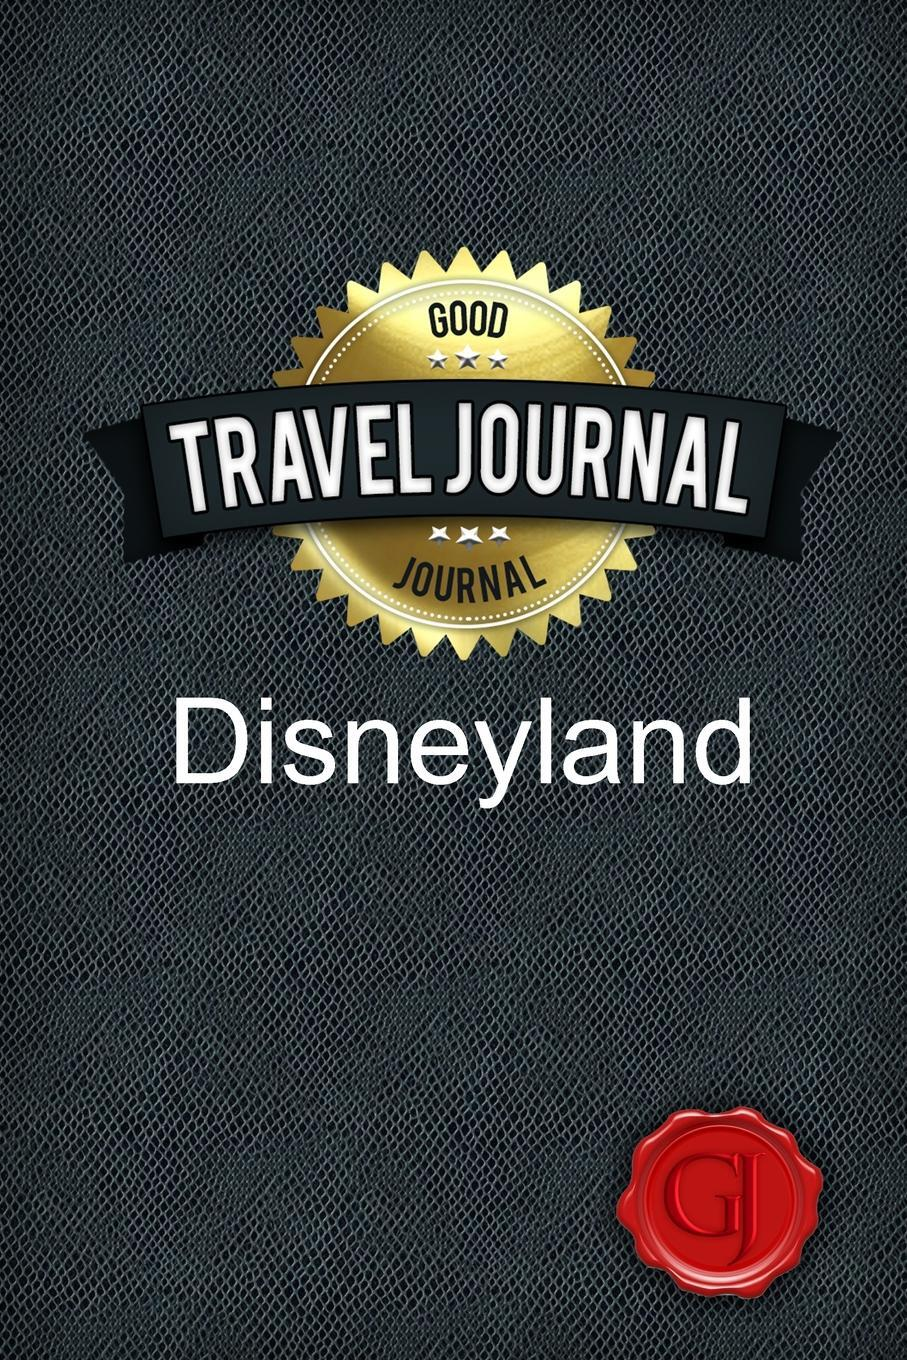 Travel Journal Disneyland. Good Journal